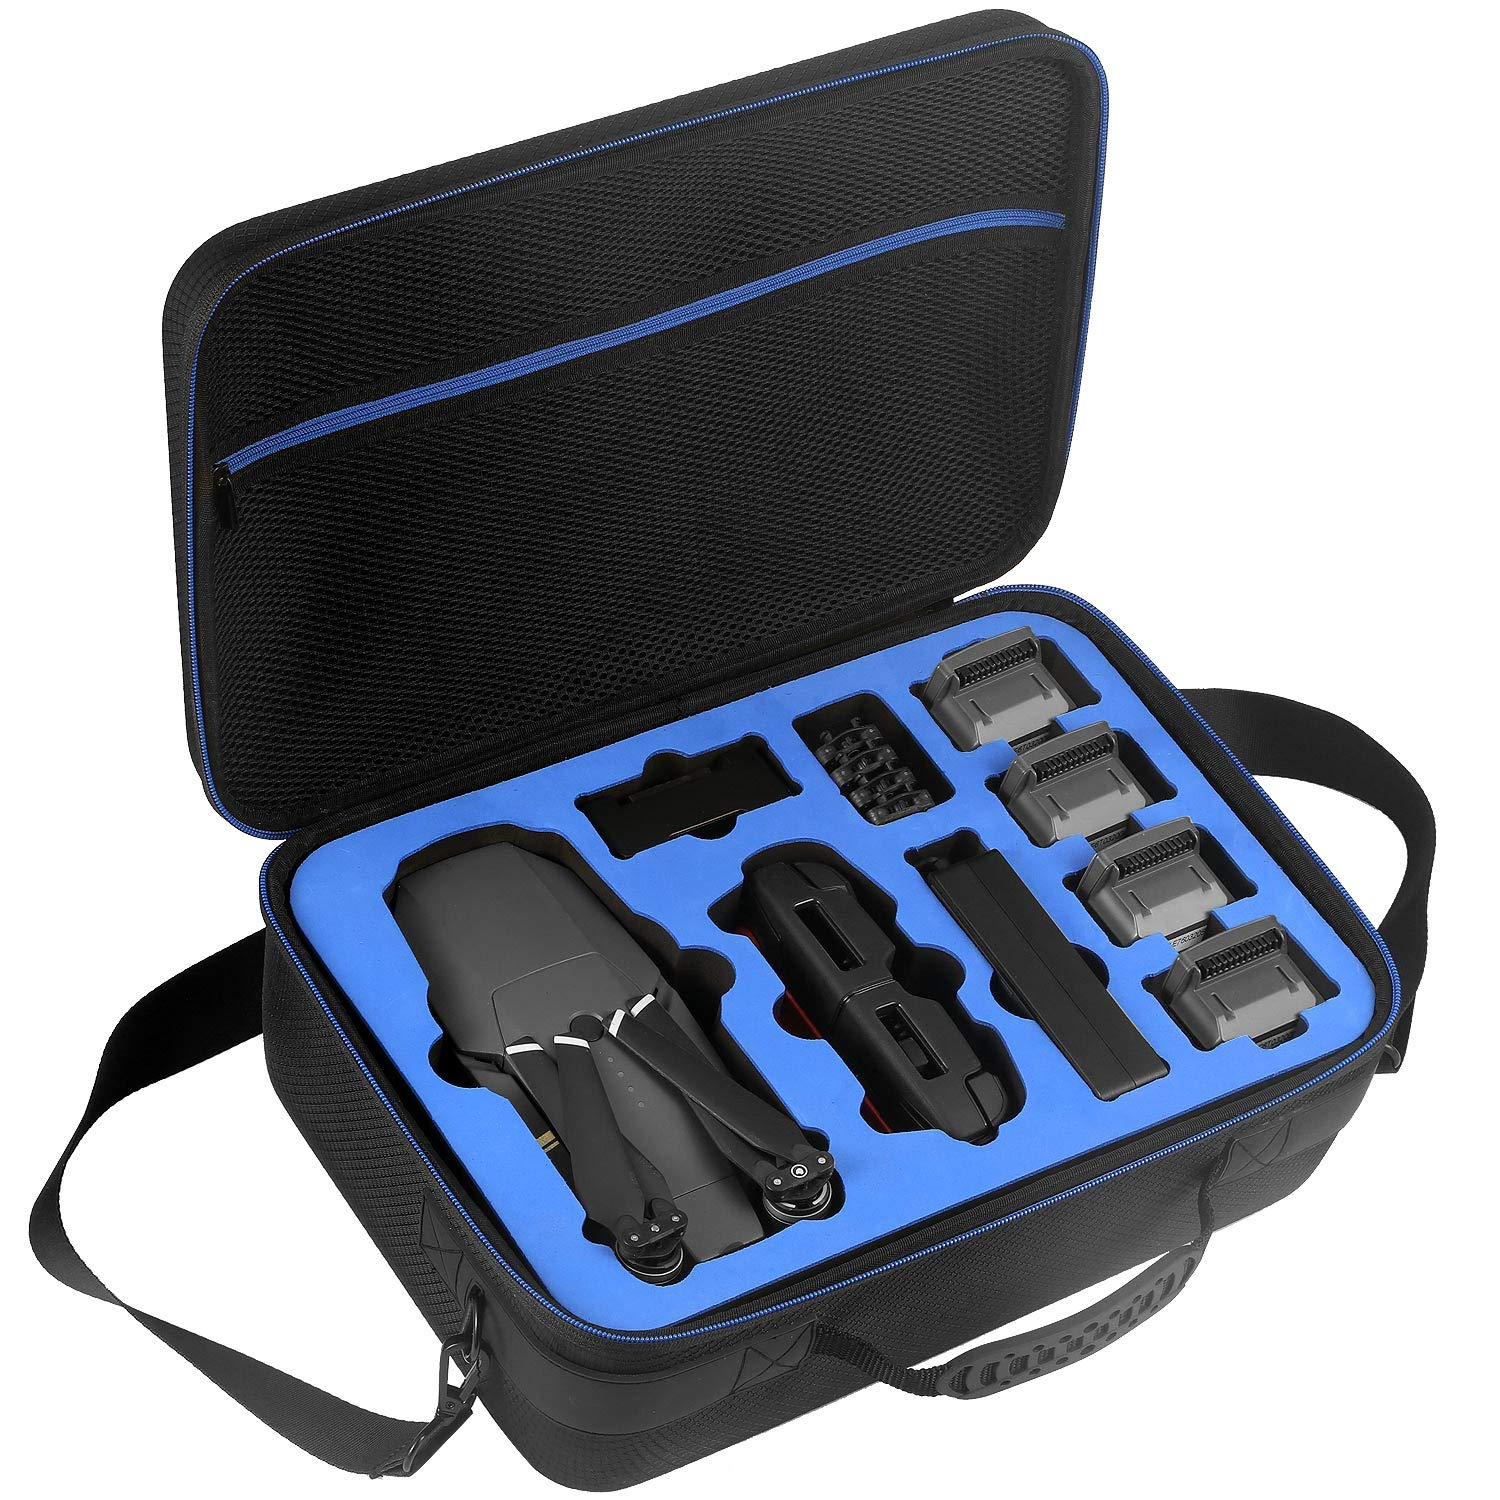 D DACCKIT Travel Carrying Case Compatible with DJI Mavic Pro/Mavic Pro Platinum Fly More Combo - Fit Quadcopter Drone, 5X Batteries, Remote Controller, Charging Hub, Propellers and Other Accessories by D DACCKIT